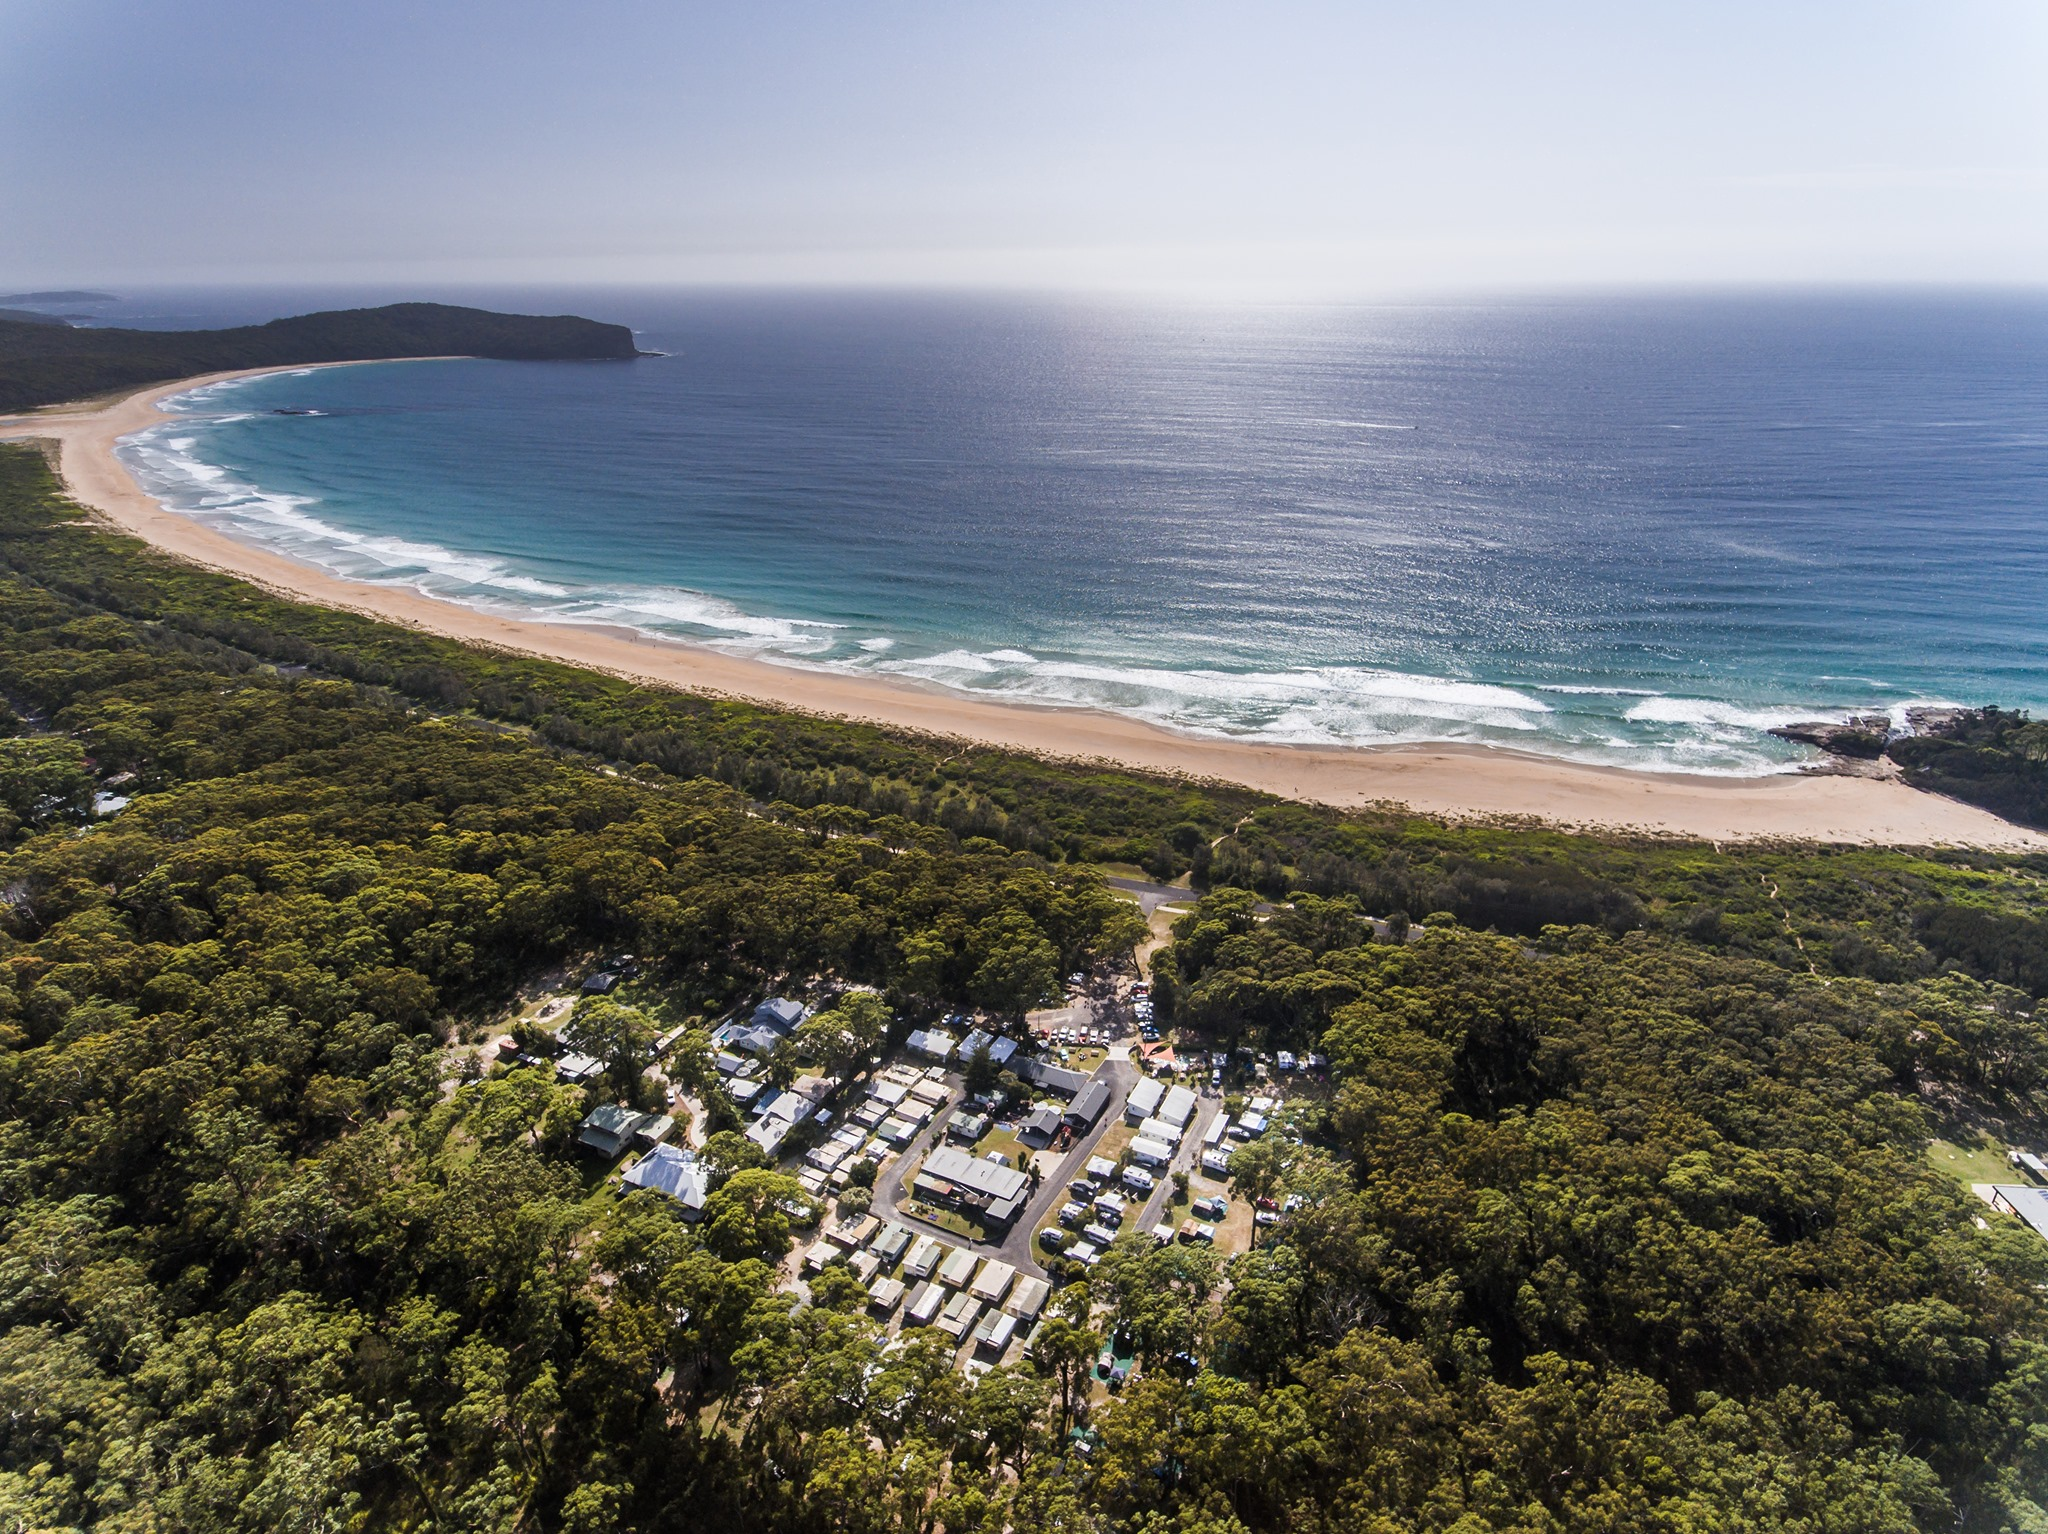 BIG4 South Durras Holiday Park is surrounded by water